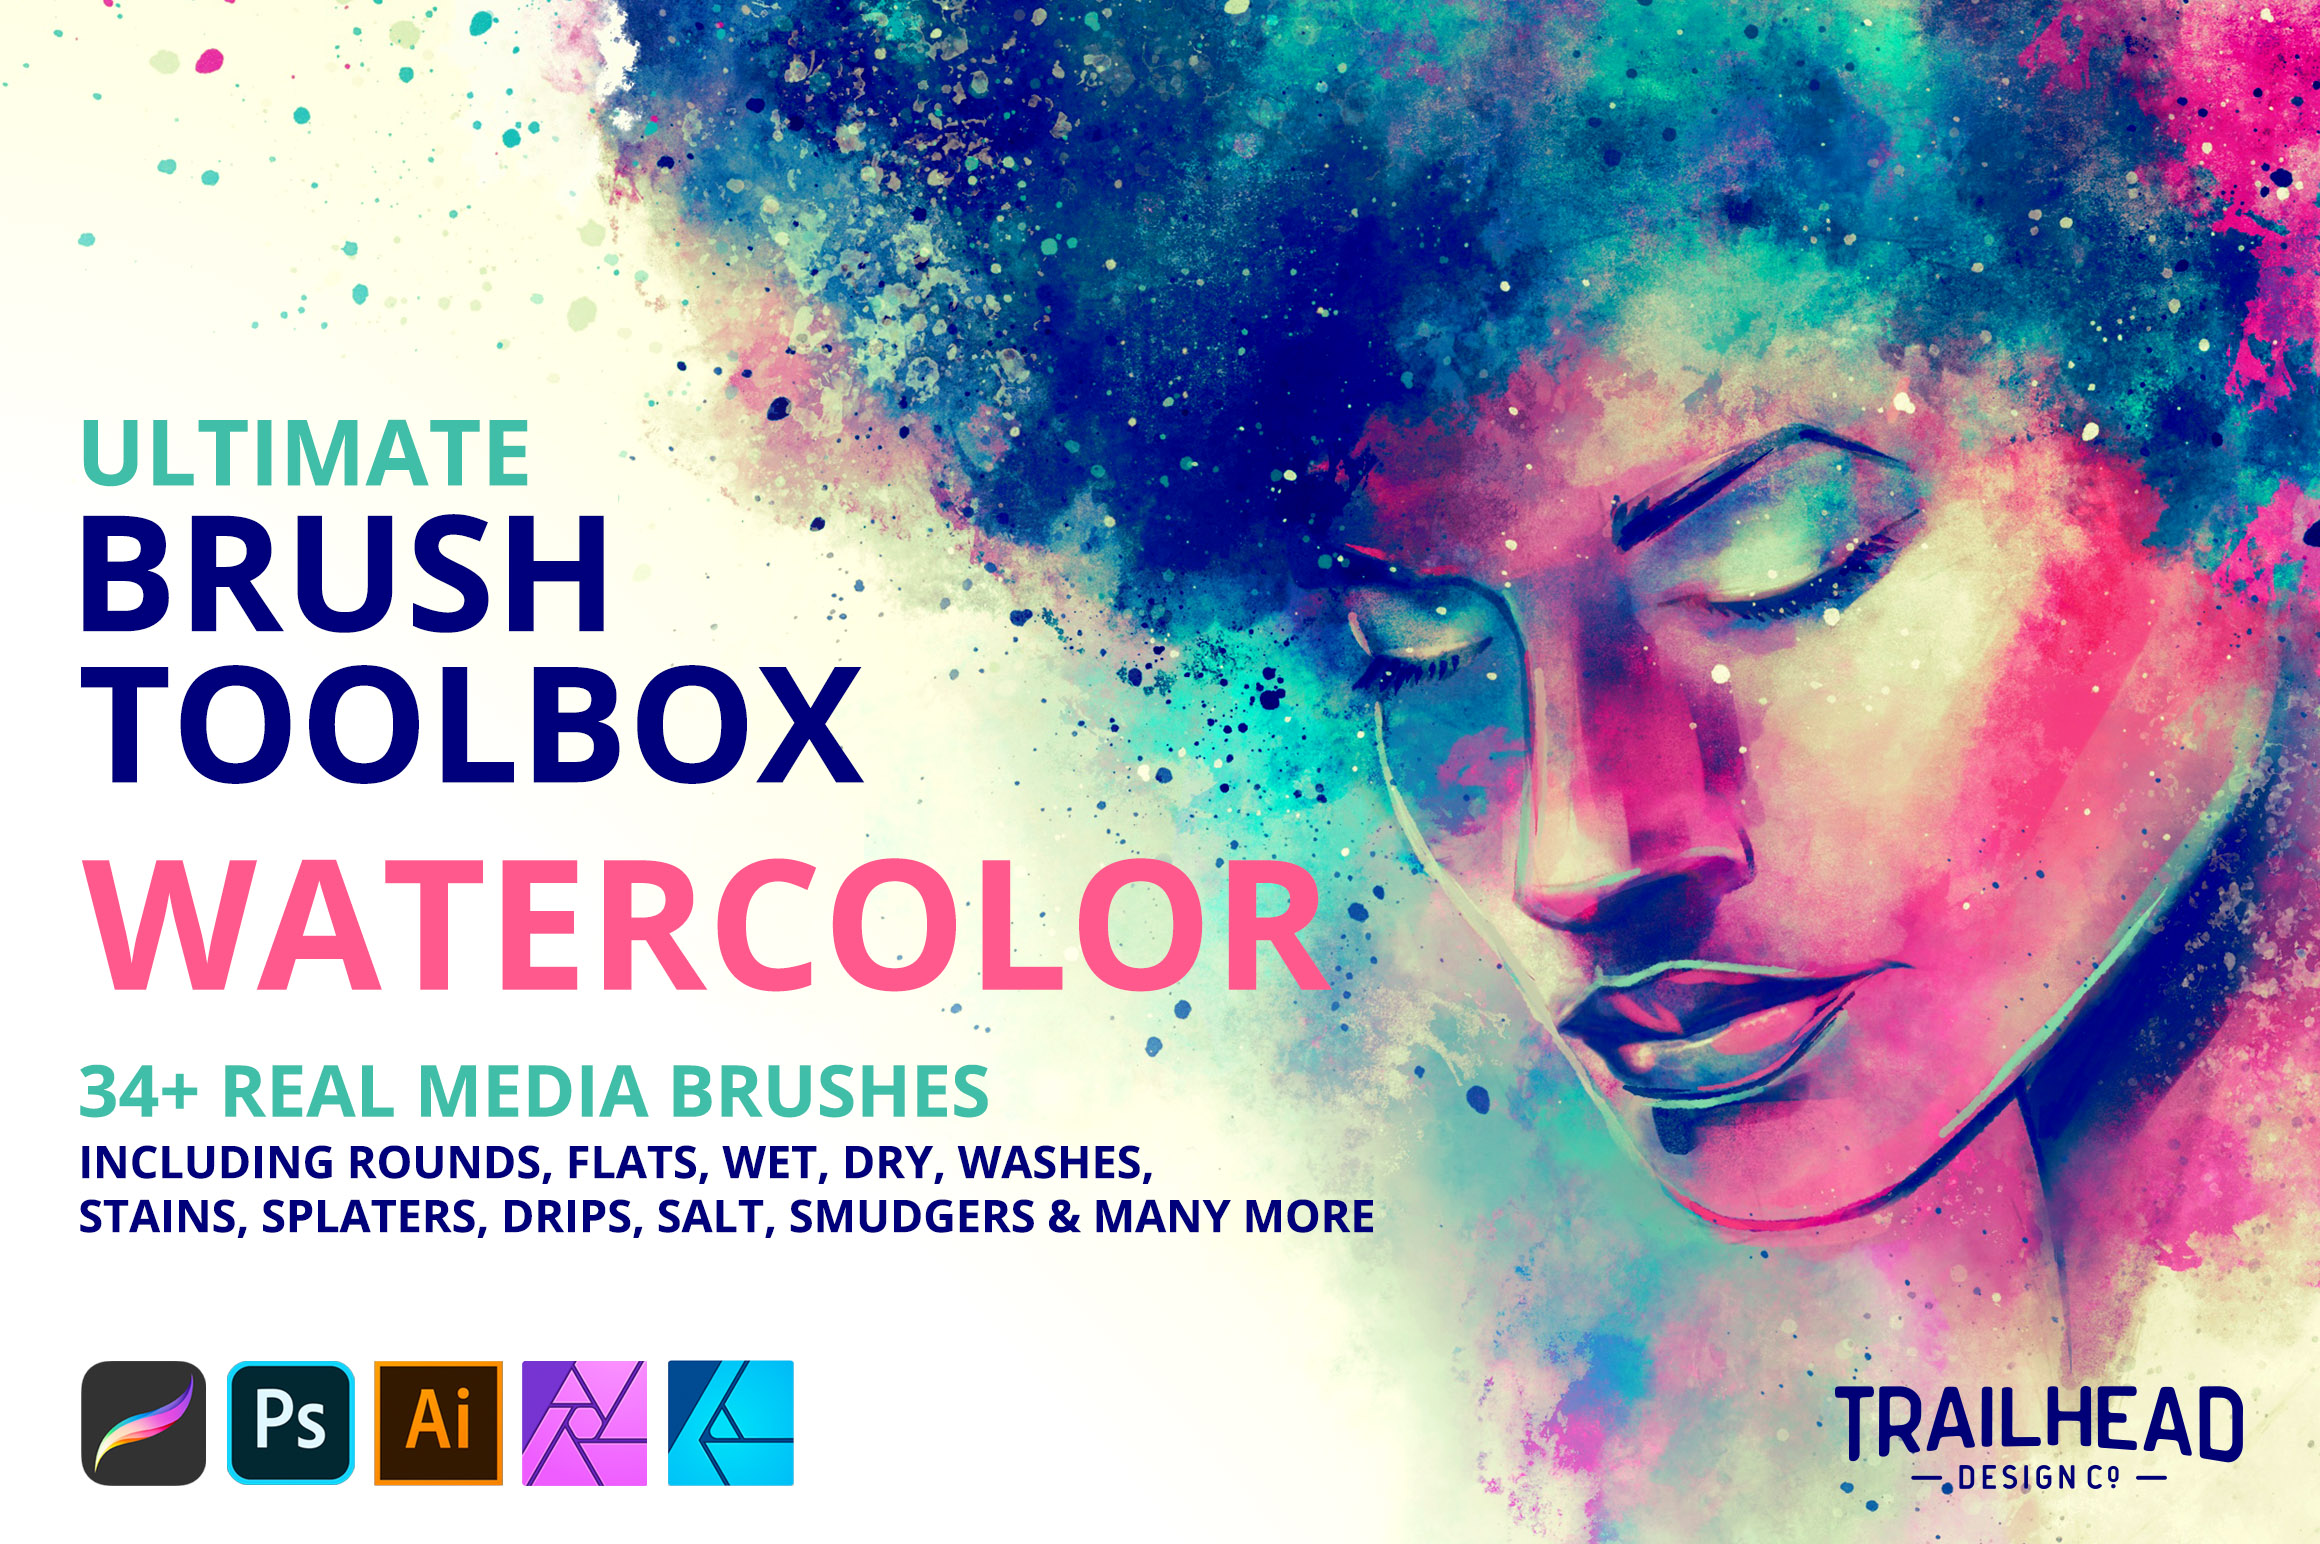 Ultimate Brush Toolbox - Watercolor